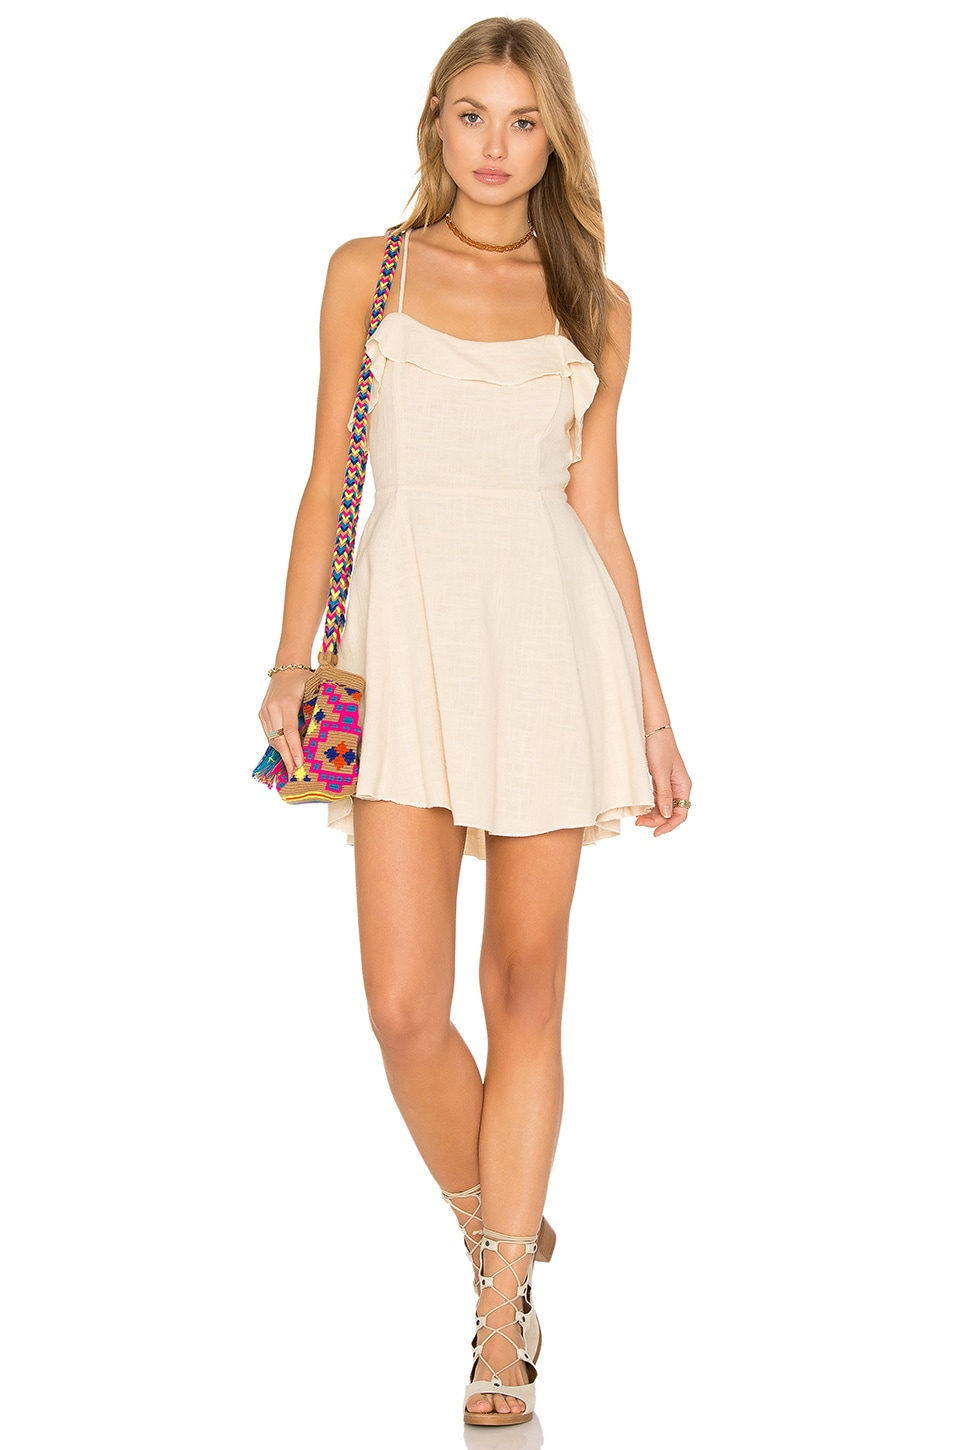 Free People More Than a Mini Dress in Beige